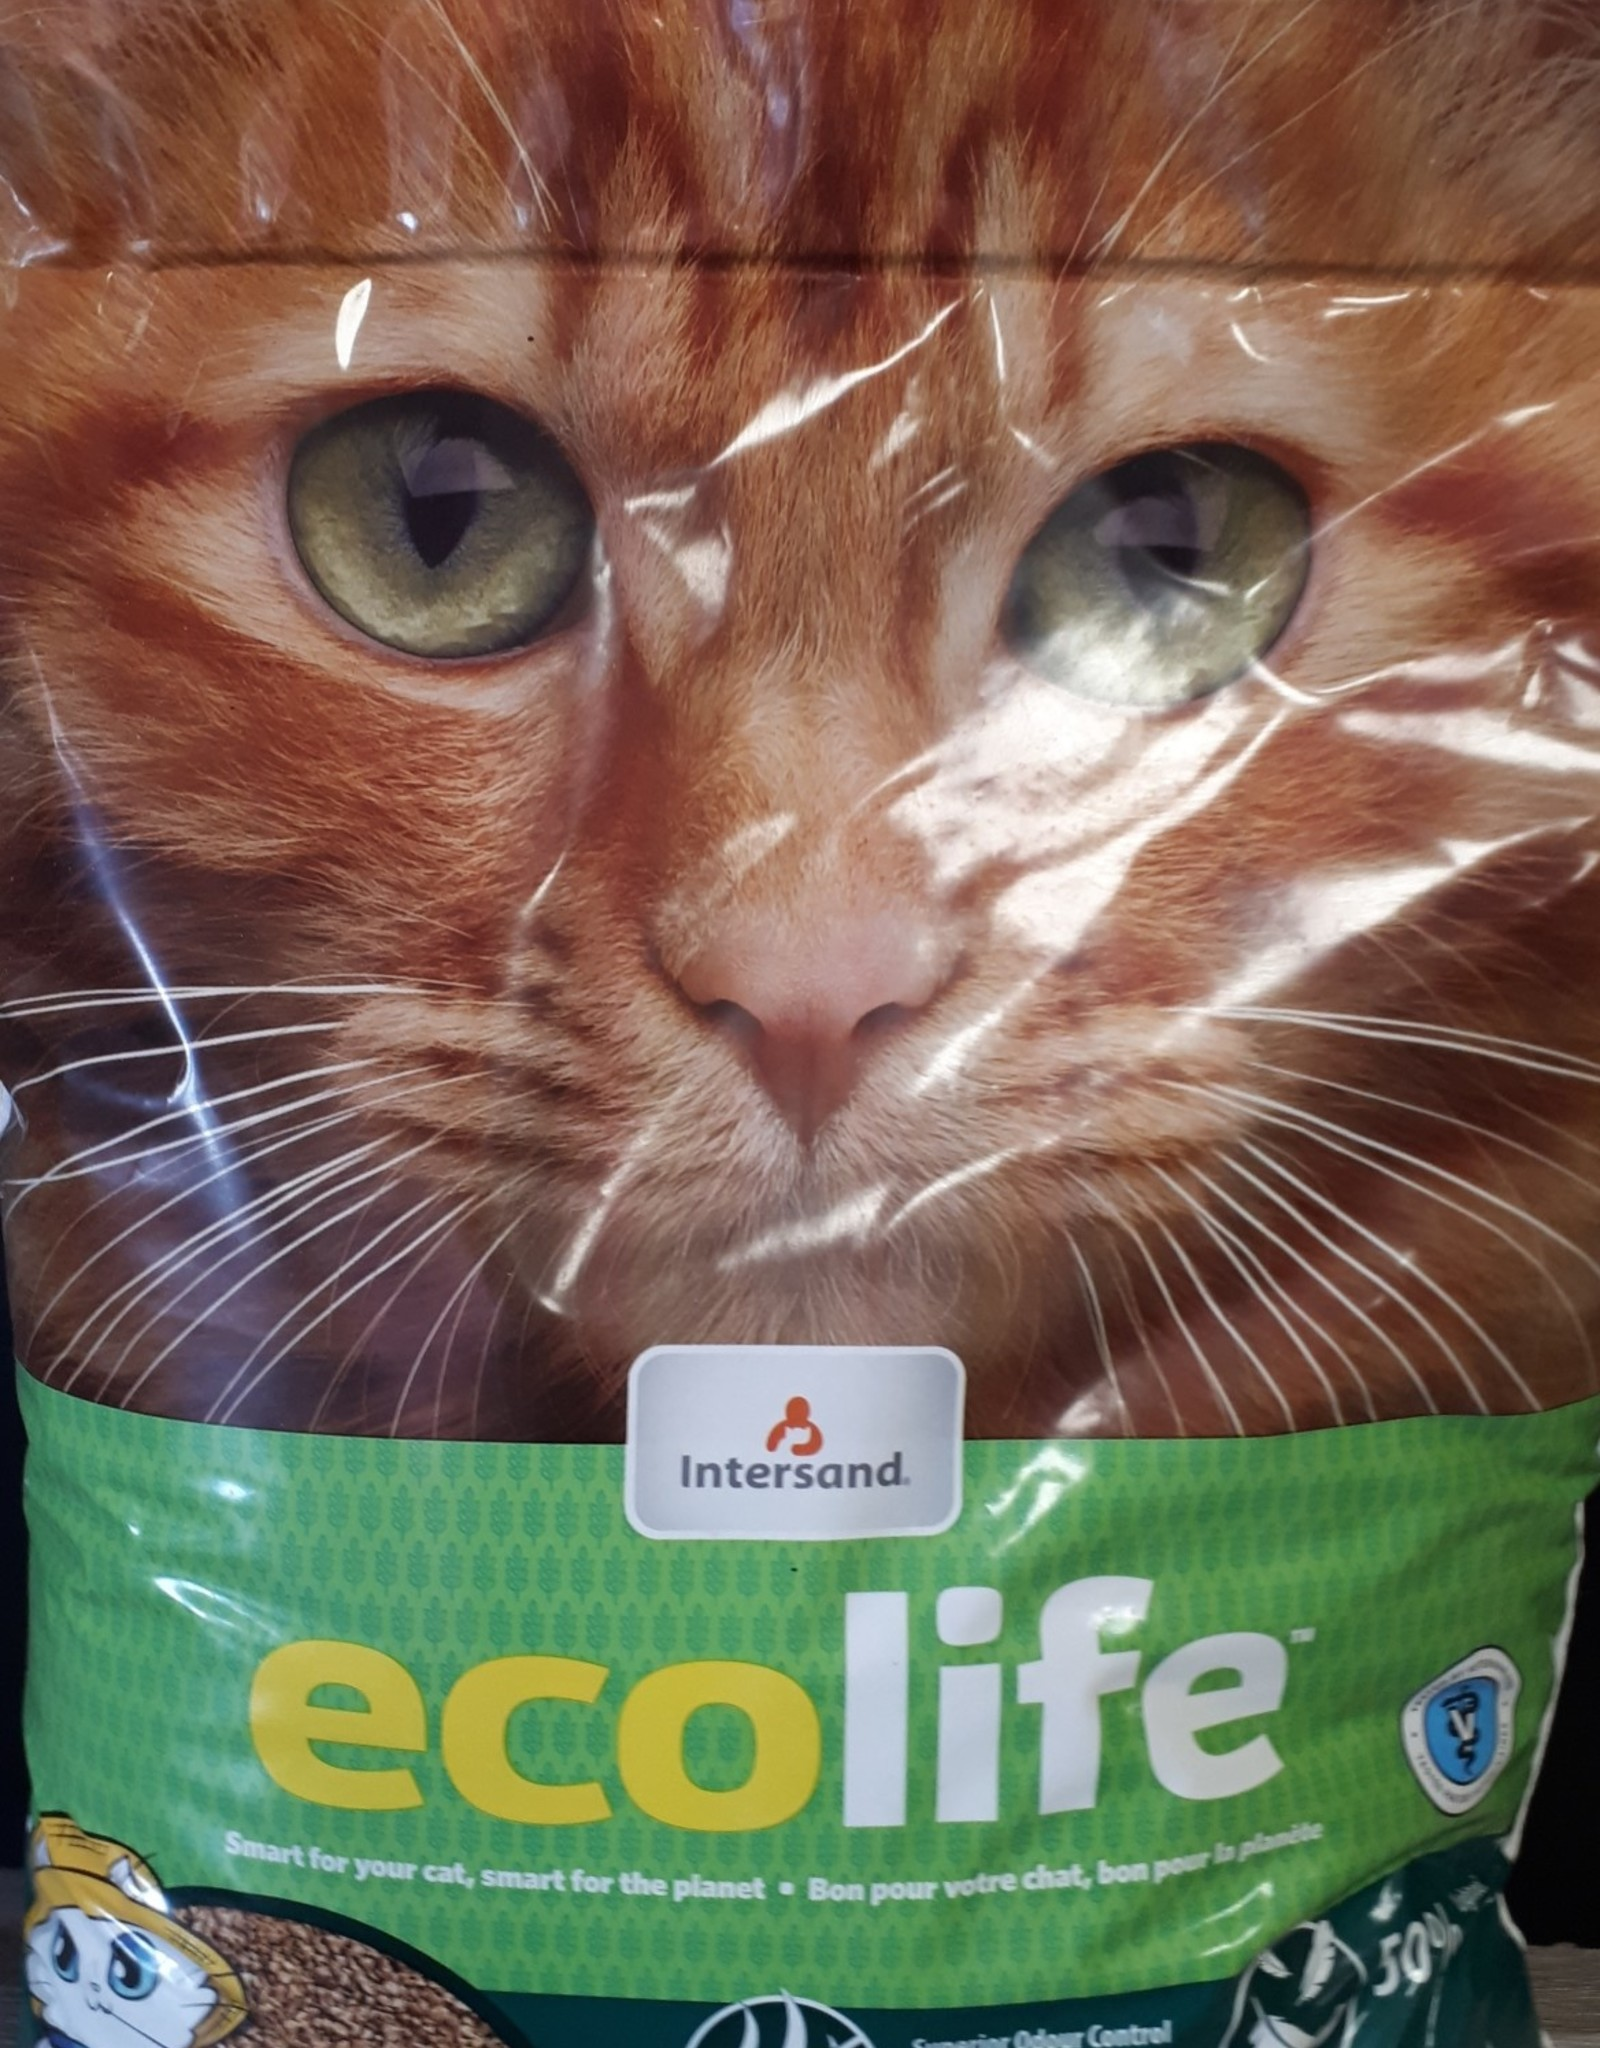 Intersand Eco life litter 5.5kg